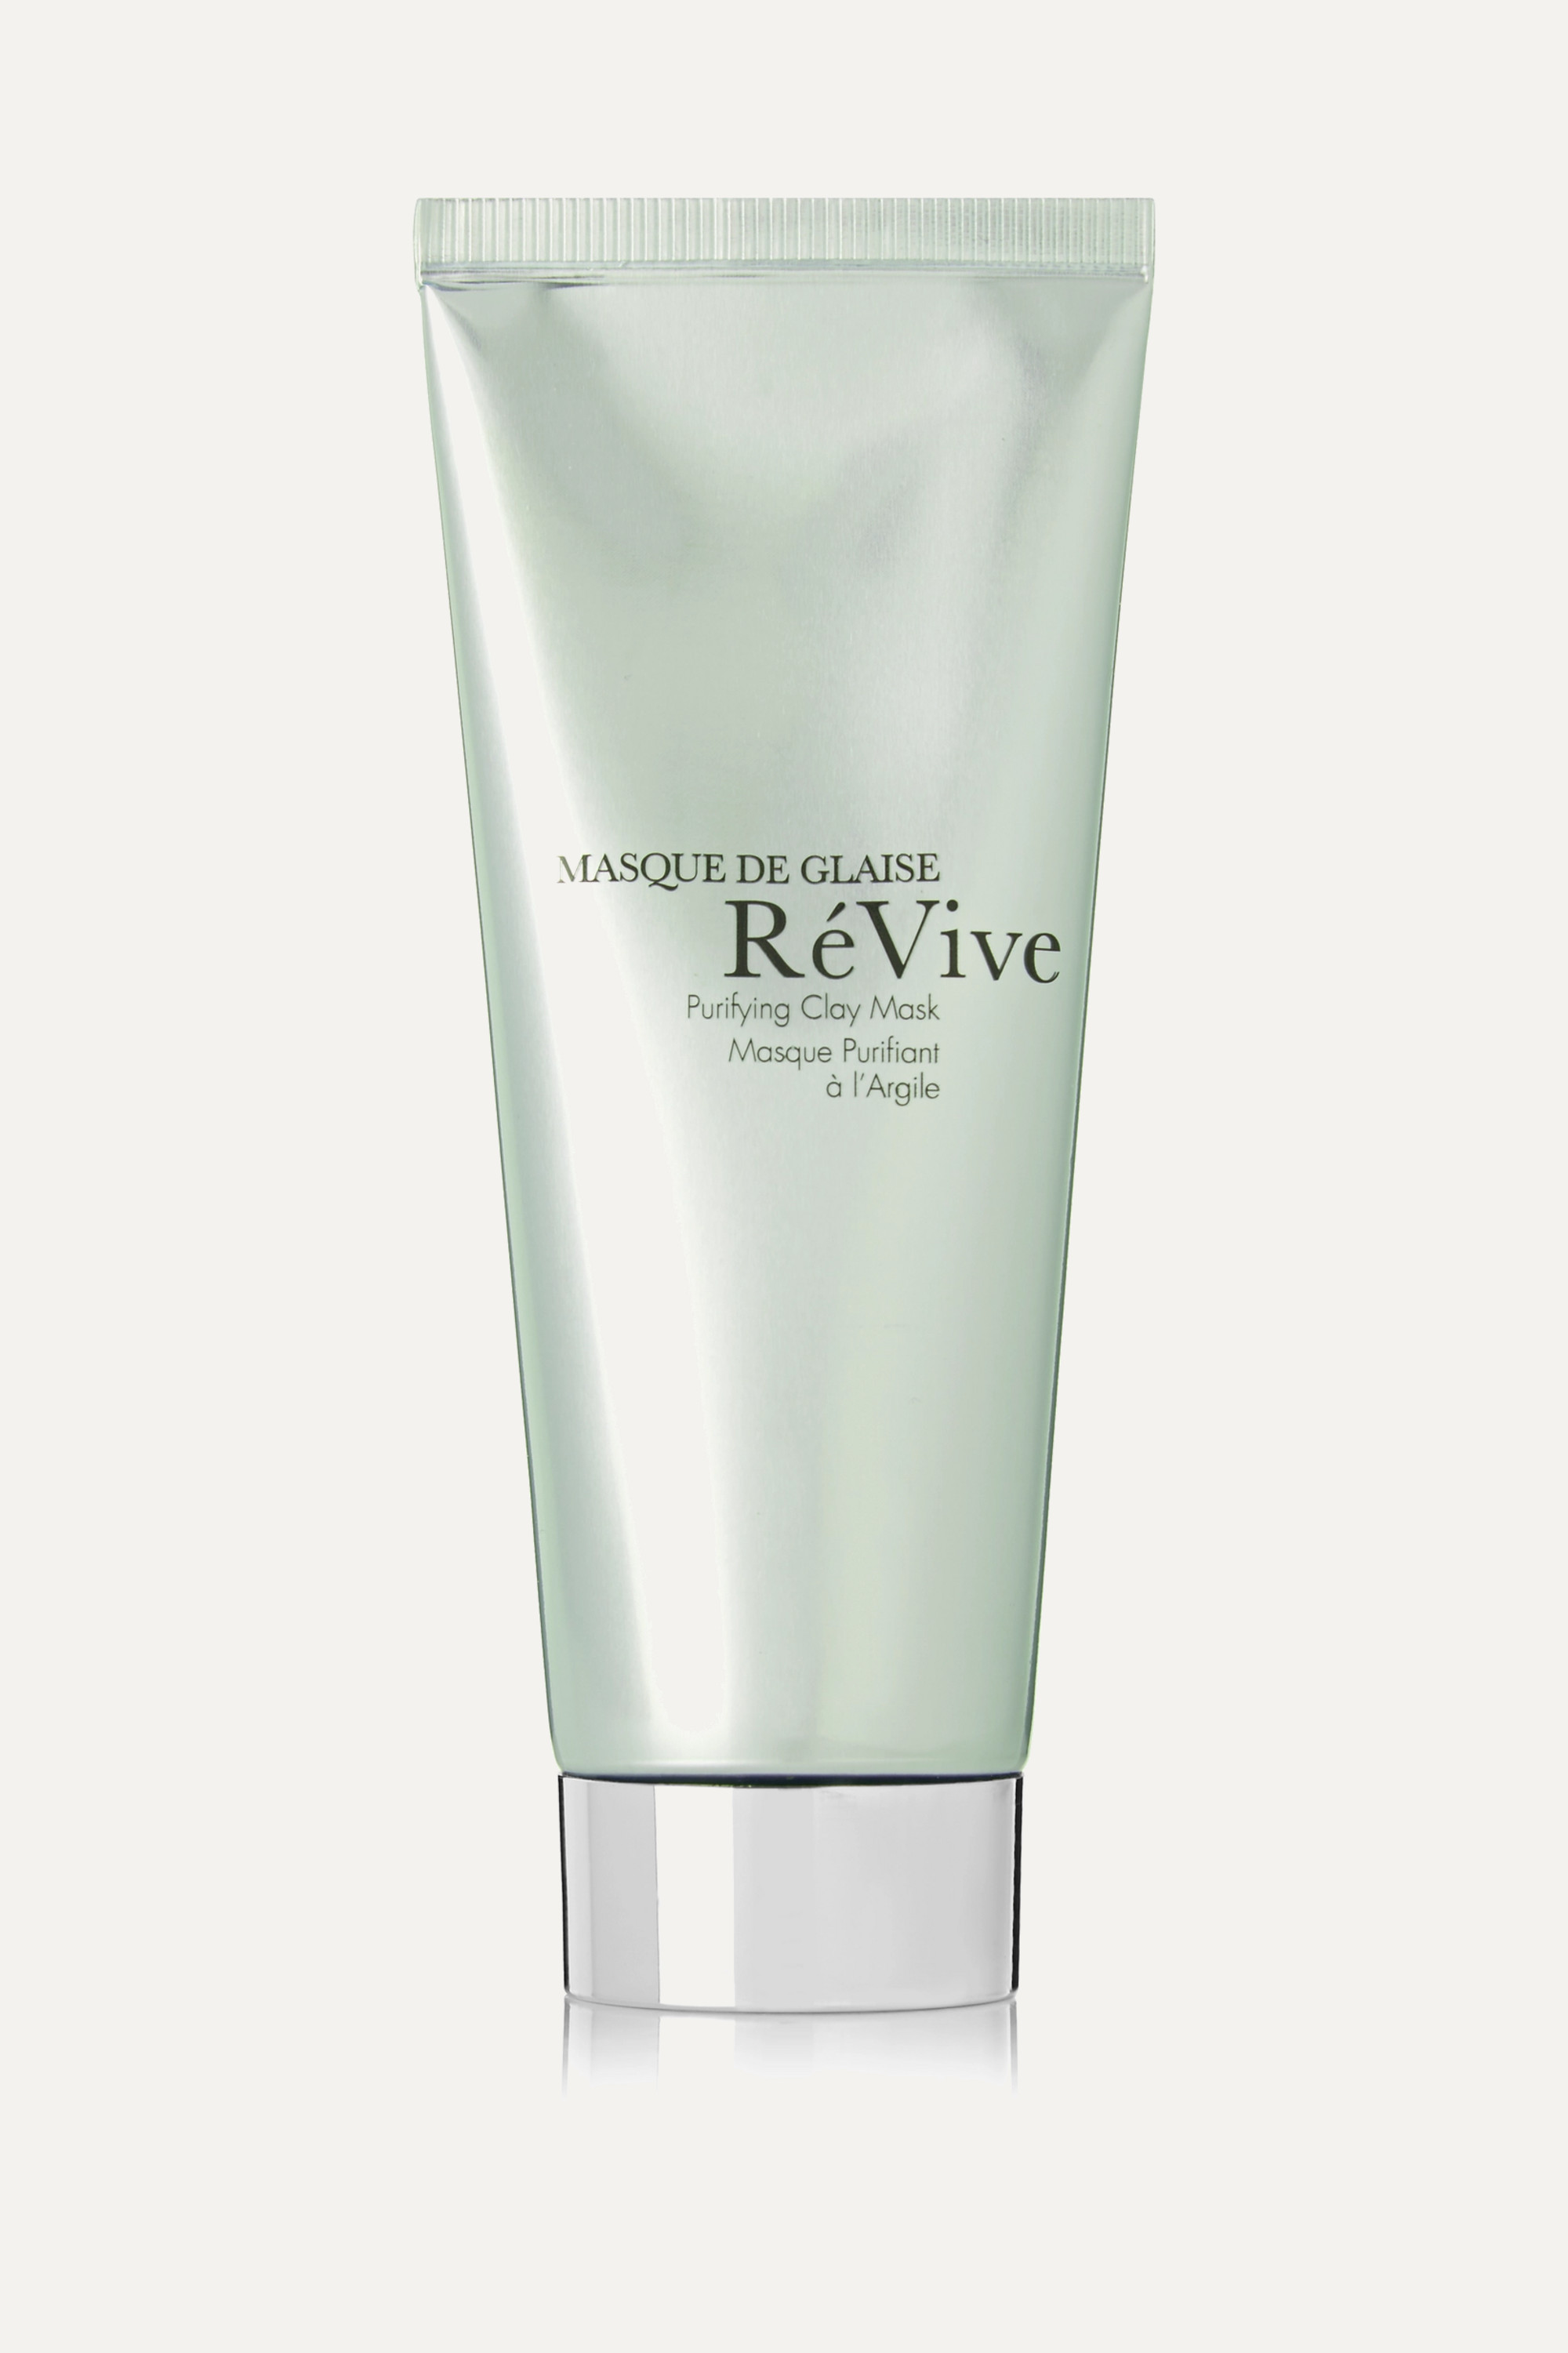 RÉVIVE Purifying Clay Mask, 75ml